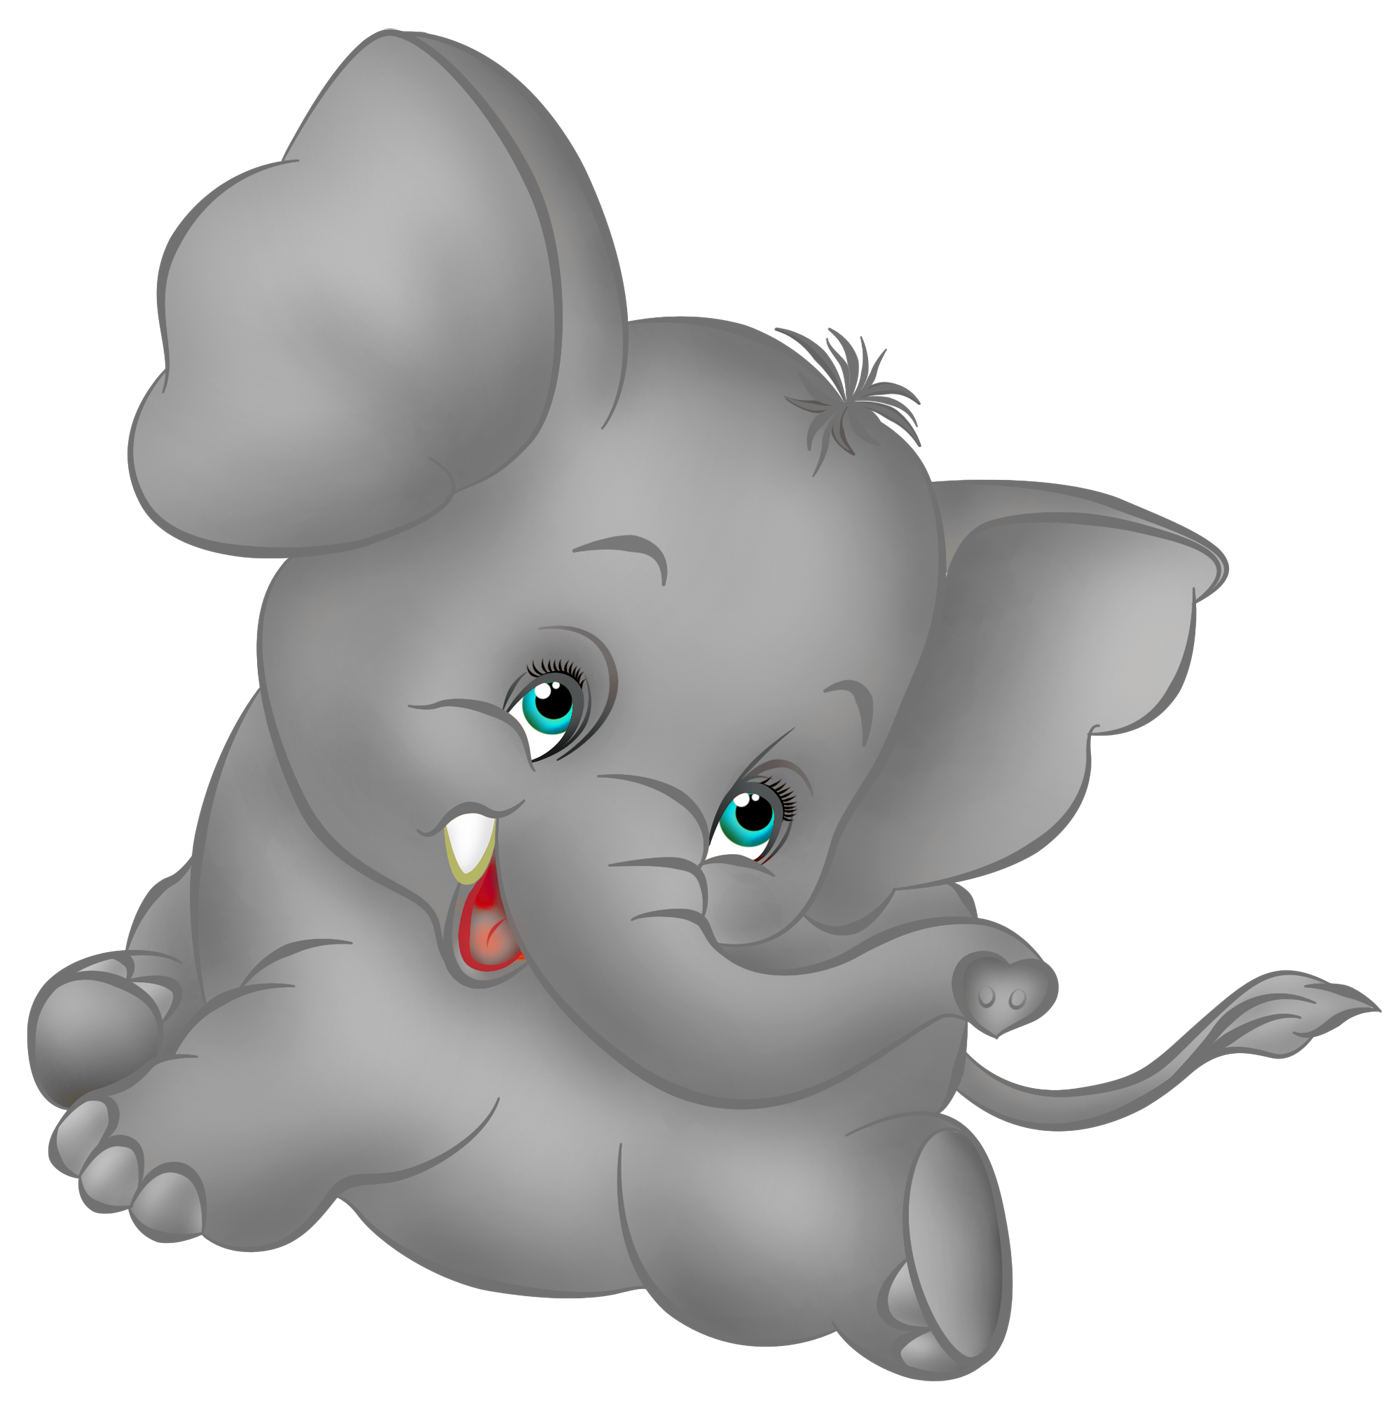 Planner clipart animated. Grey elephant cartoon free